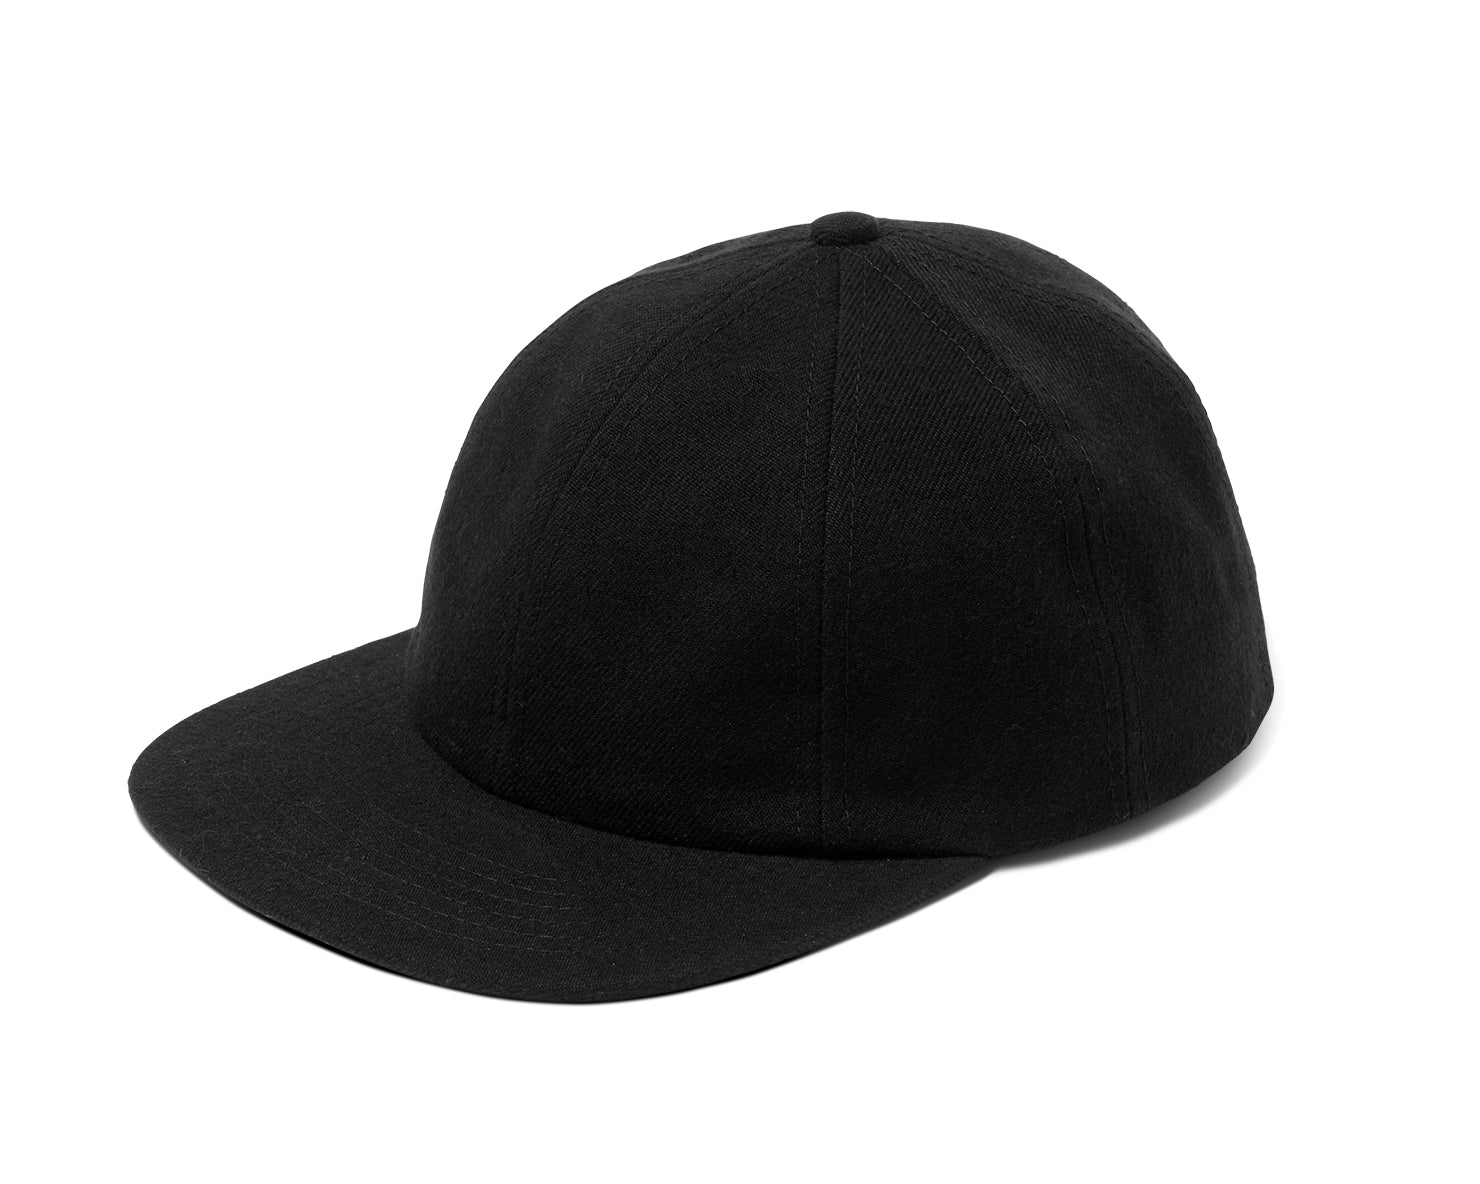 8 PANEL HAT | KILLSPENCER® - Black Wool